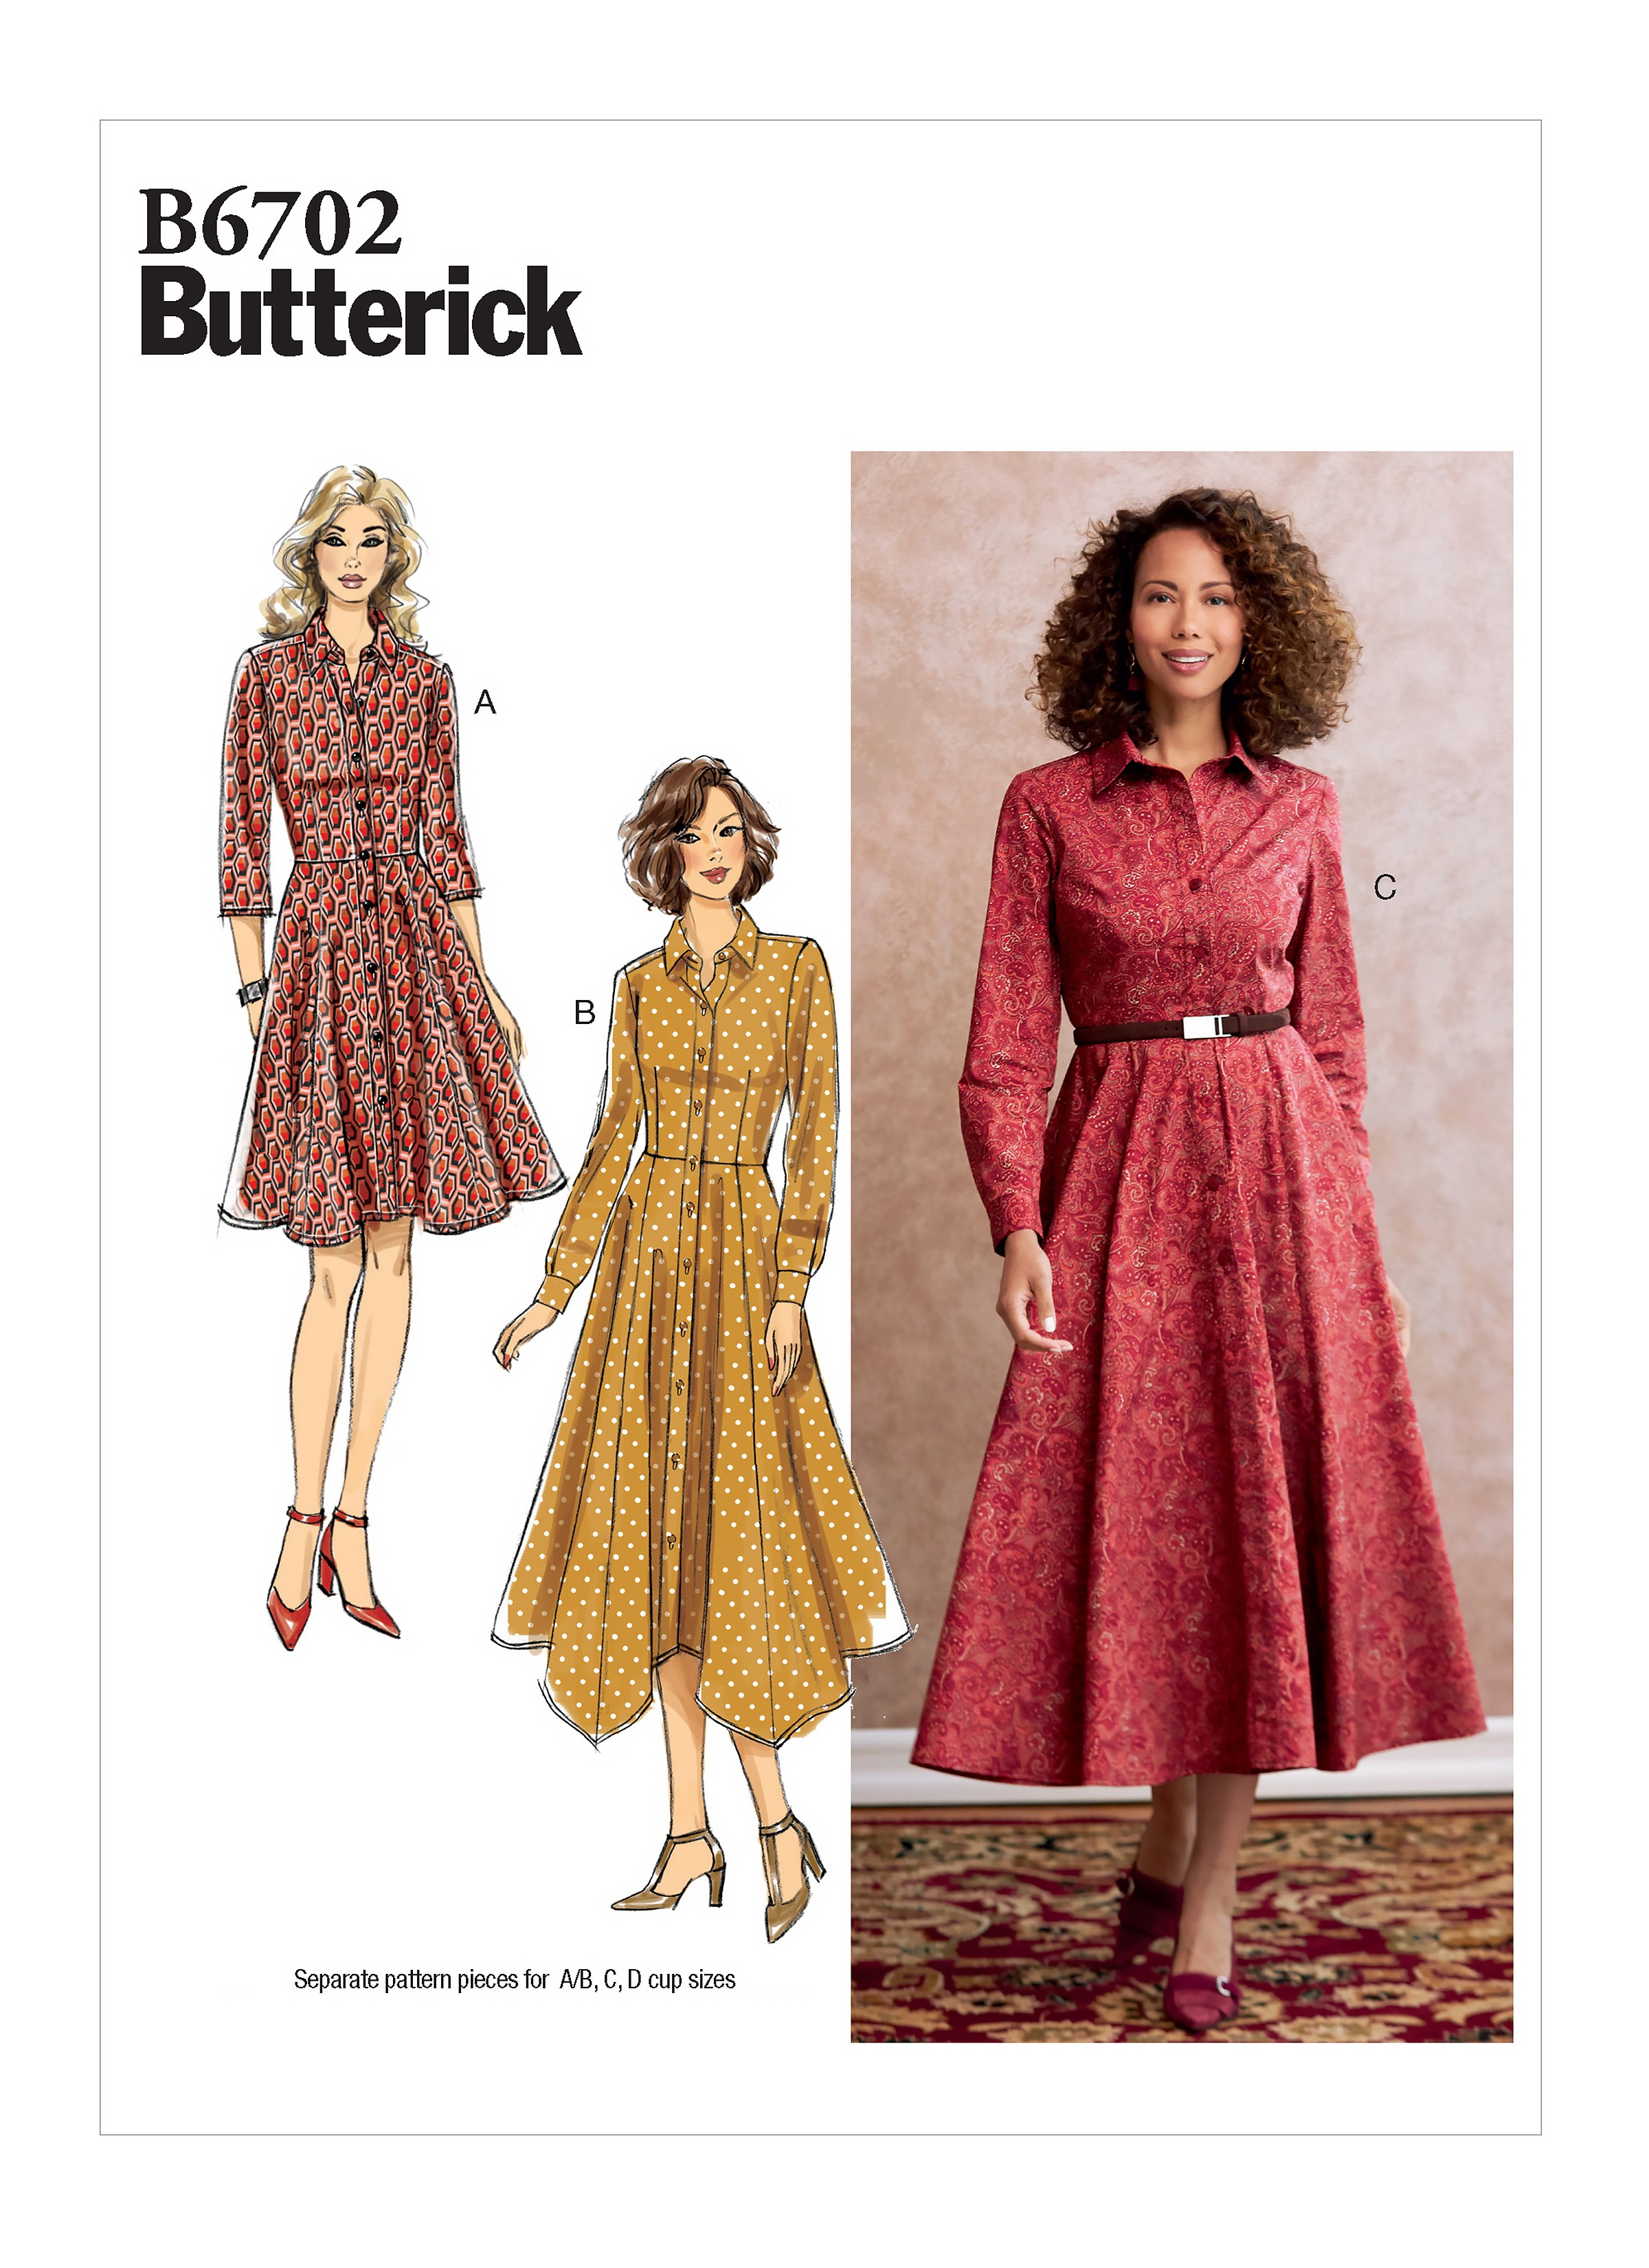 Butterick Sewing Pattern B6702 Misses' Fitted Bodice & Flared Skirt Dress